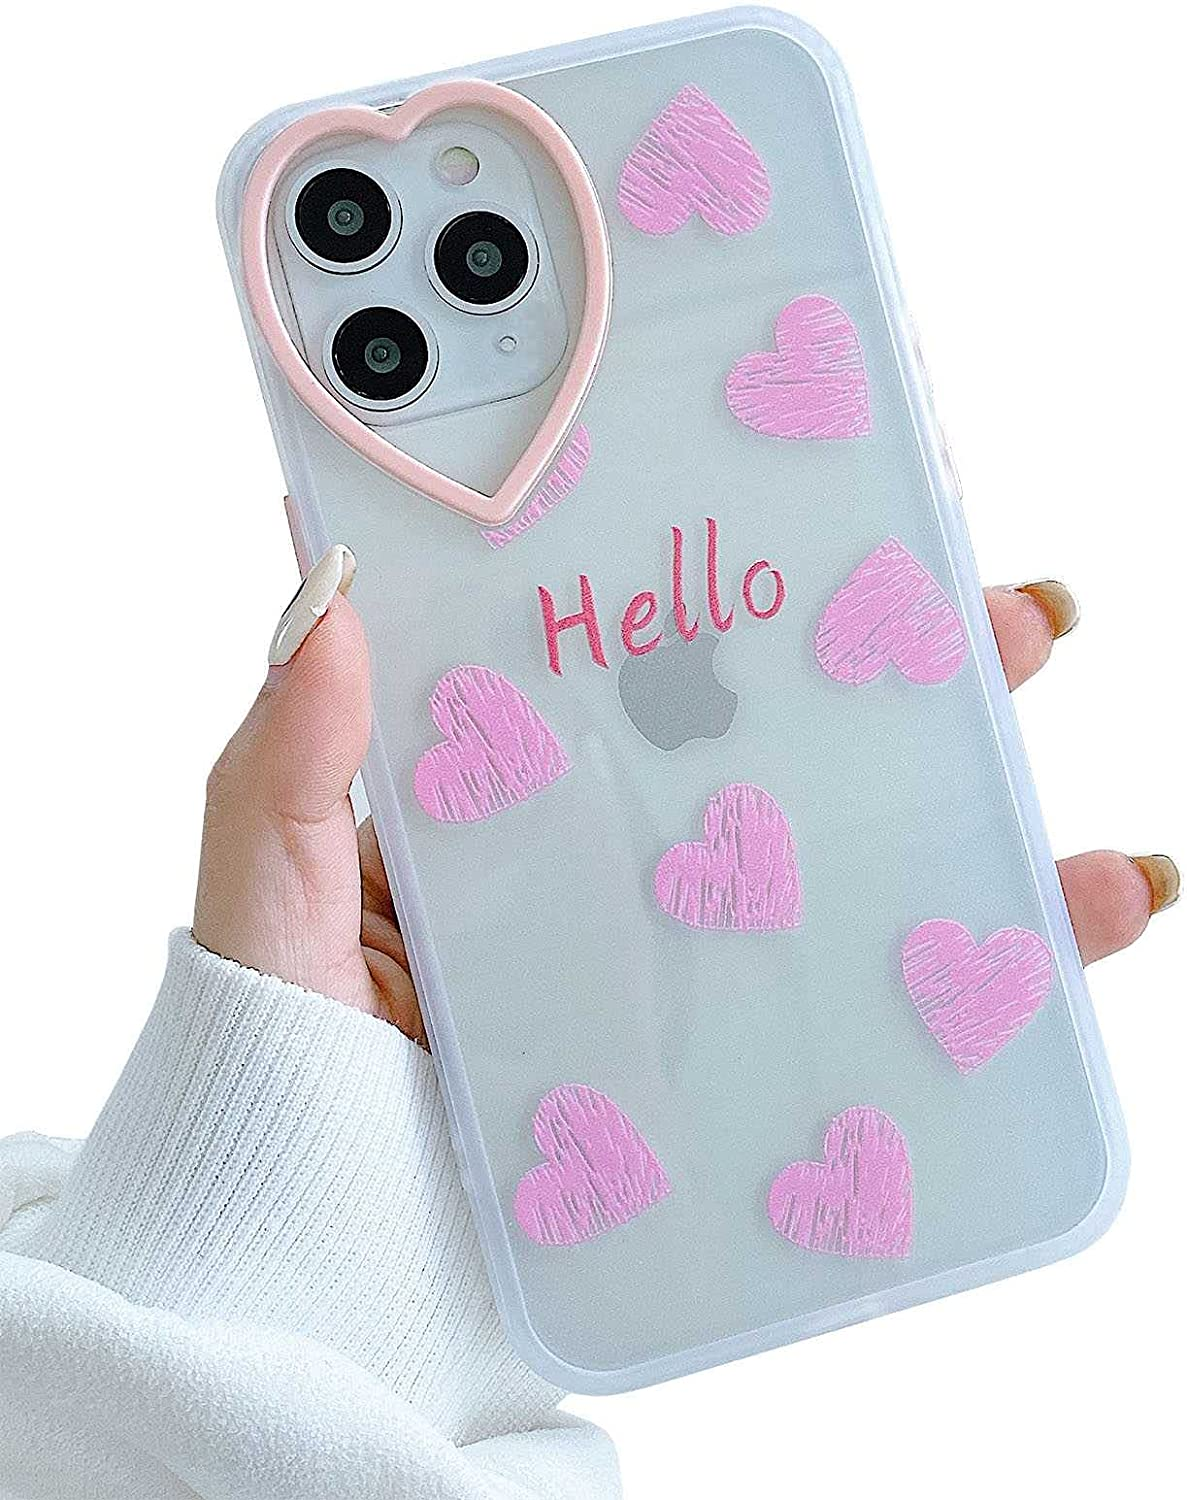 KERZZIL Cute Love-Hearts Pattern iPhone 11 Pro Max Case Clear for Women Girls, Slim Soft TPU Silicone Shockproof Protective Cases Cover Compatible with Apple iPhone 11 Pro Max 6.5-inch(Pink)